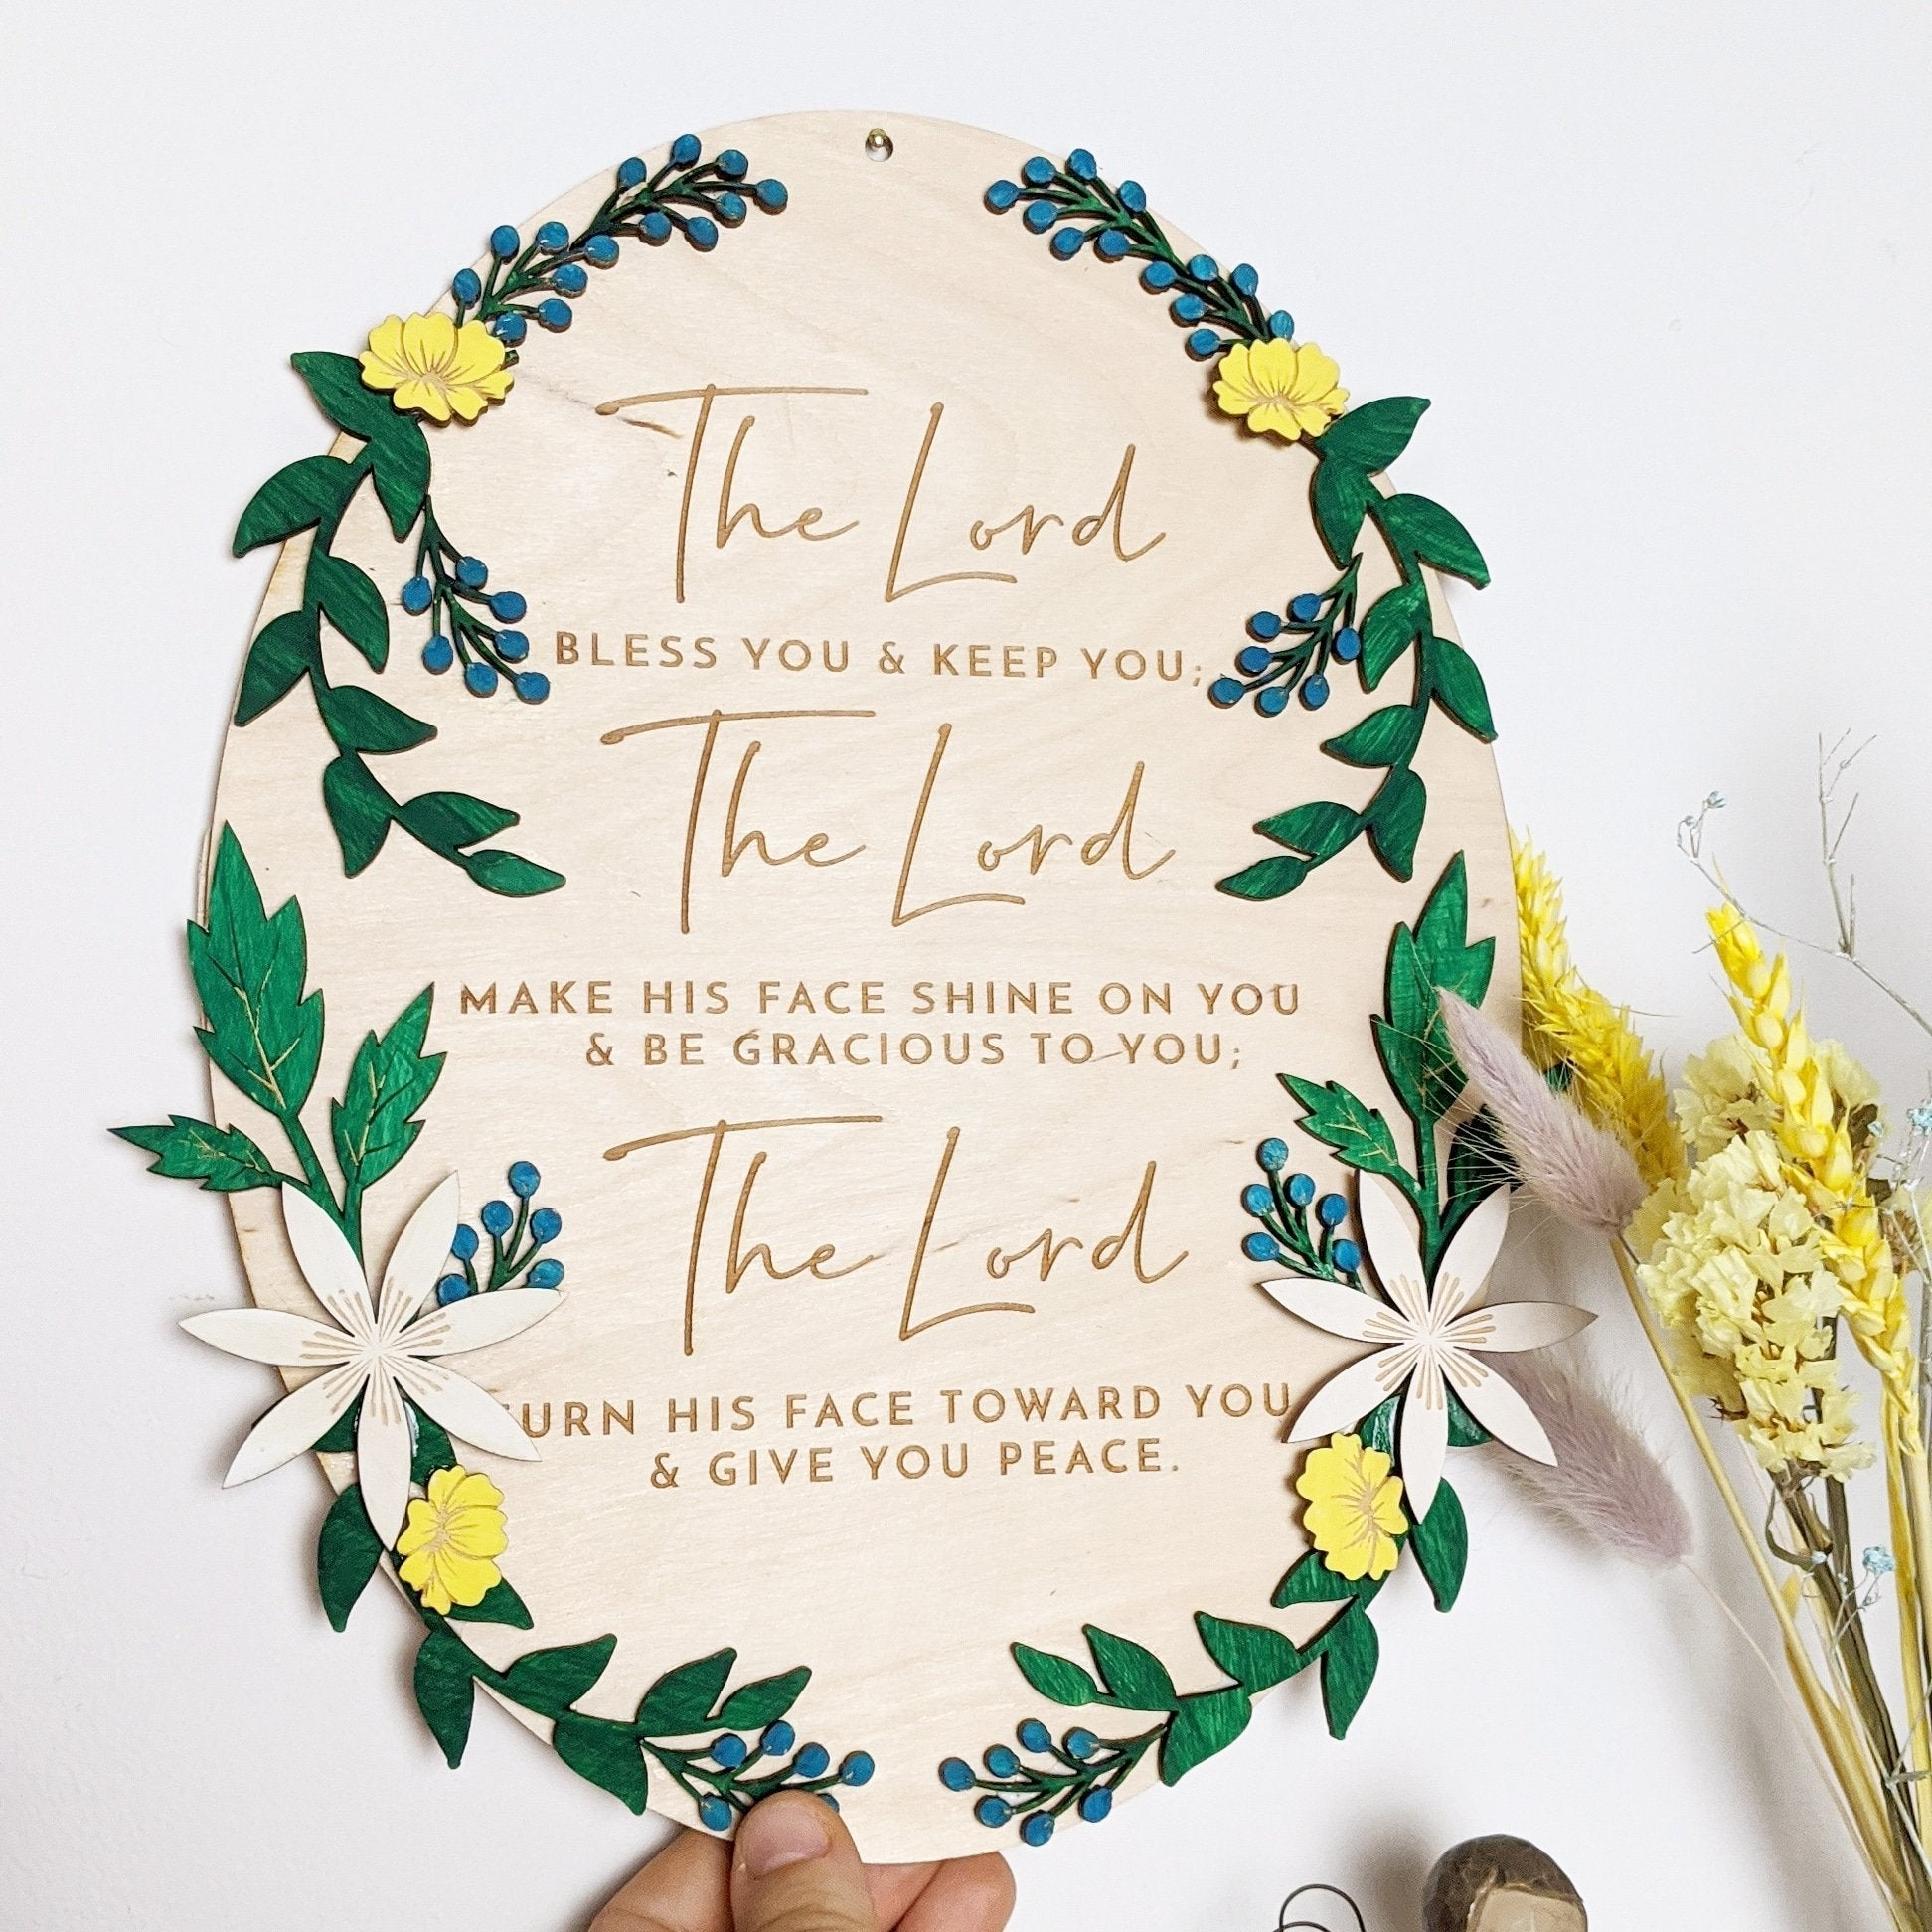 The lord bless you wall sign